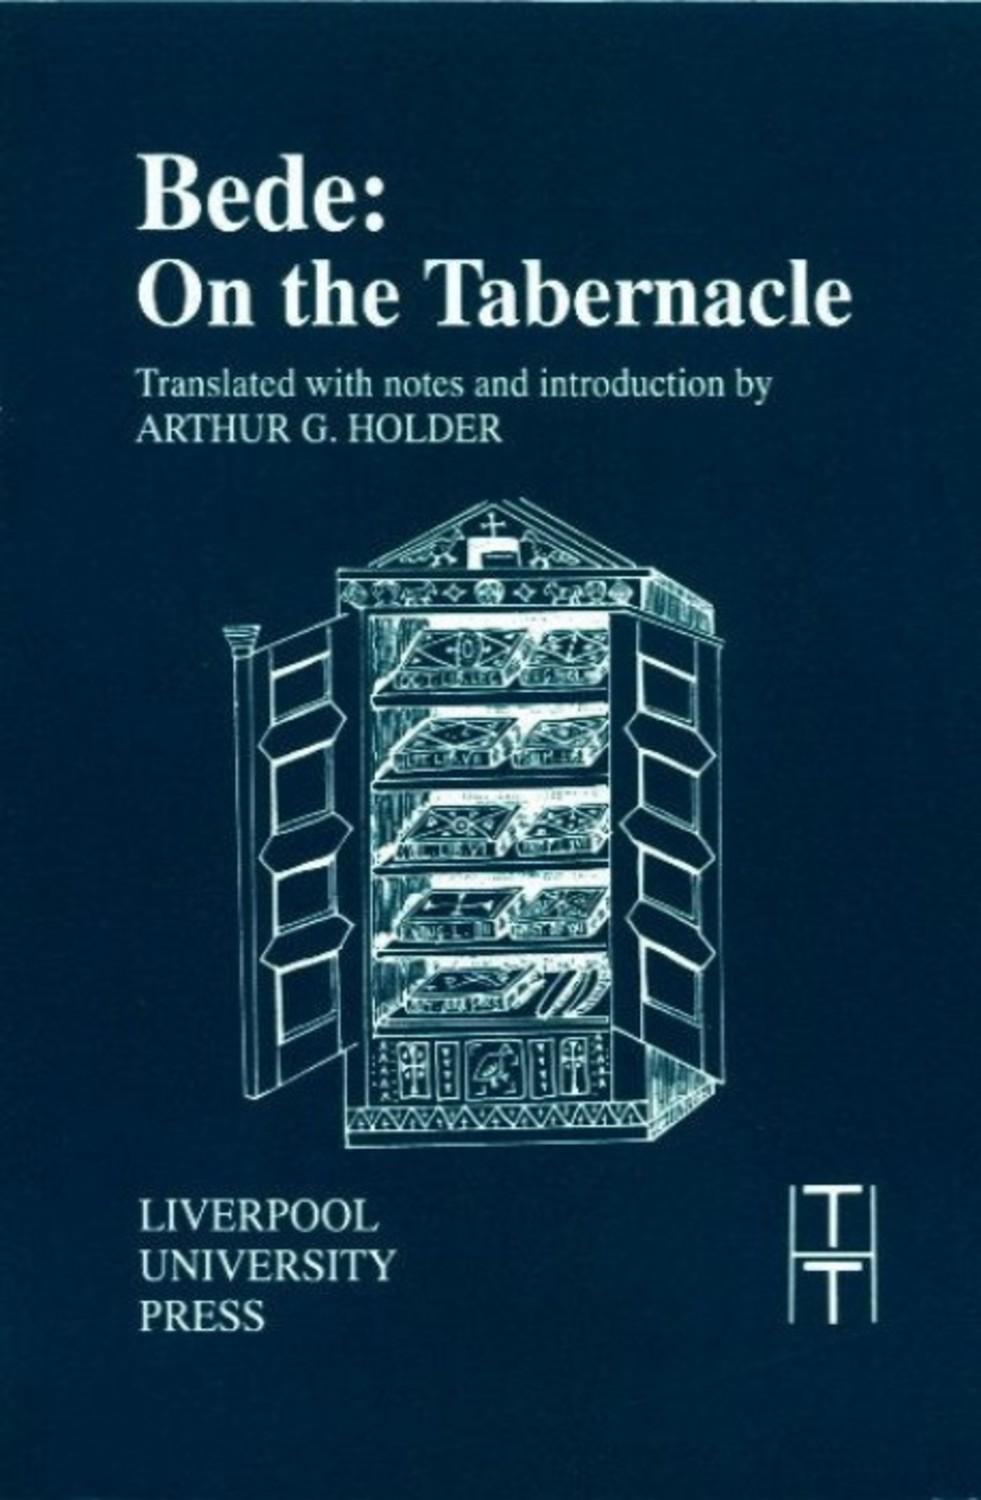 Bede: On the Tabernacle